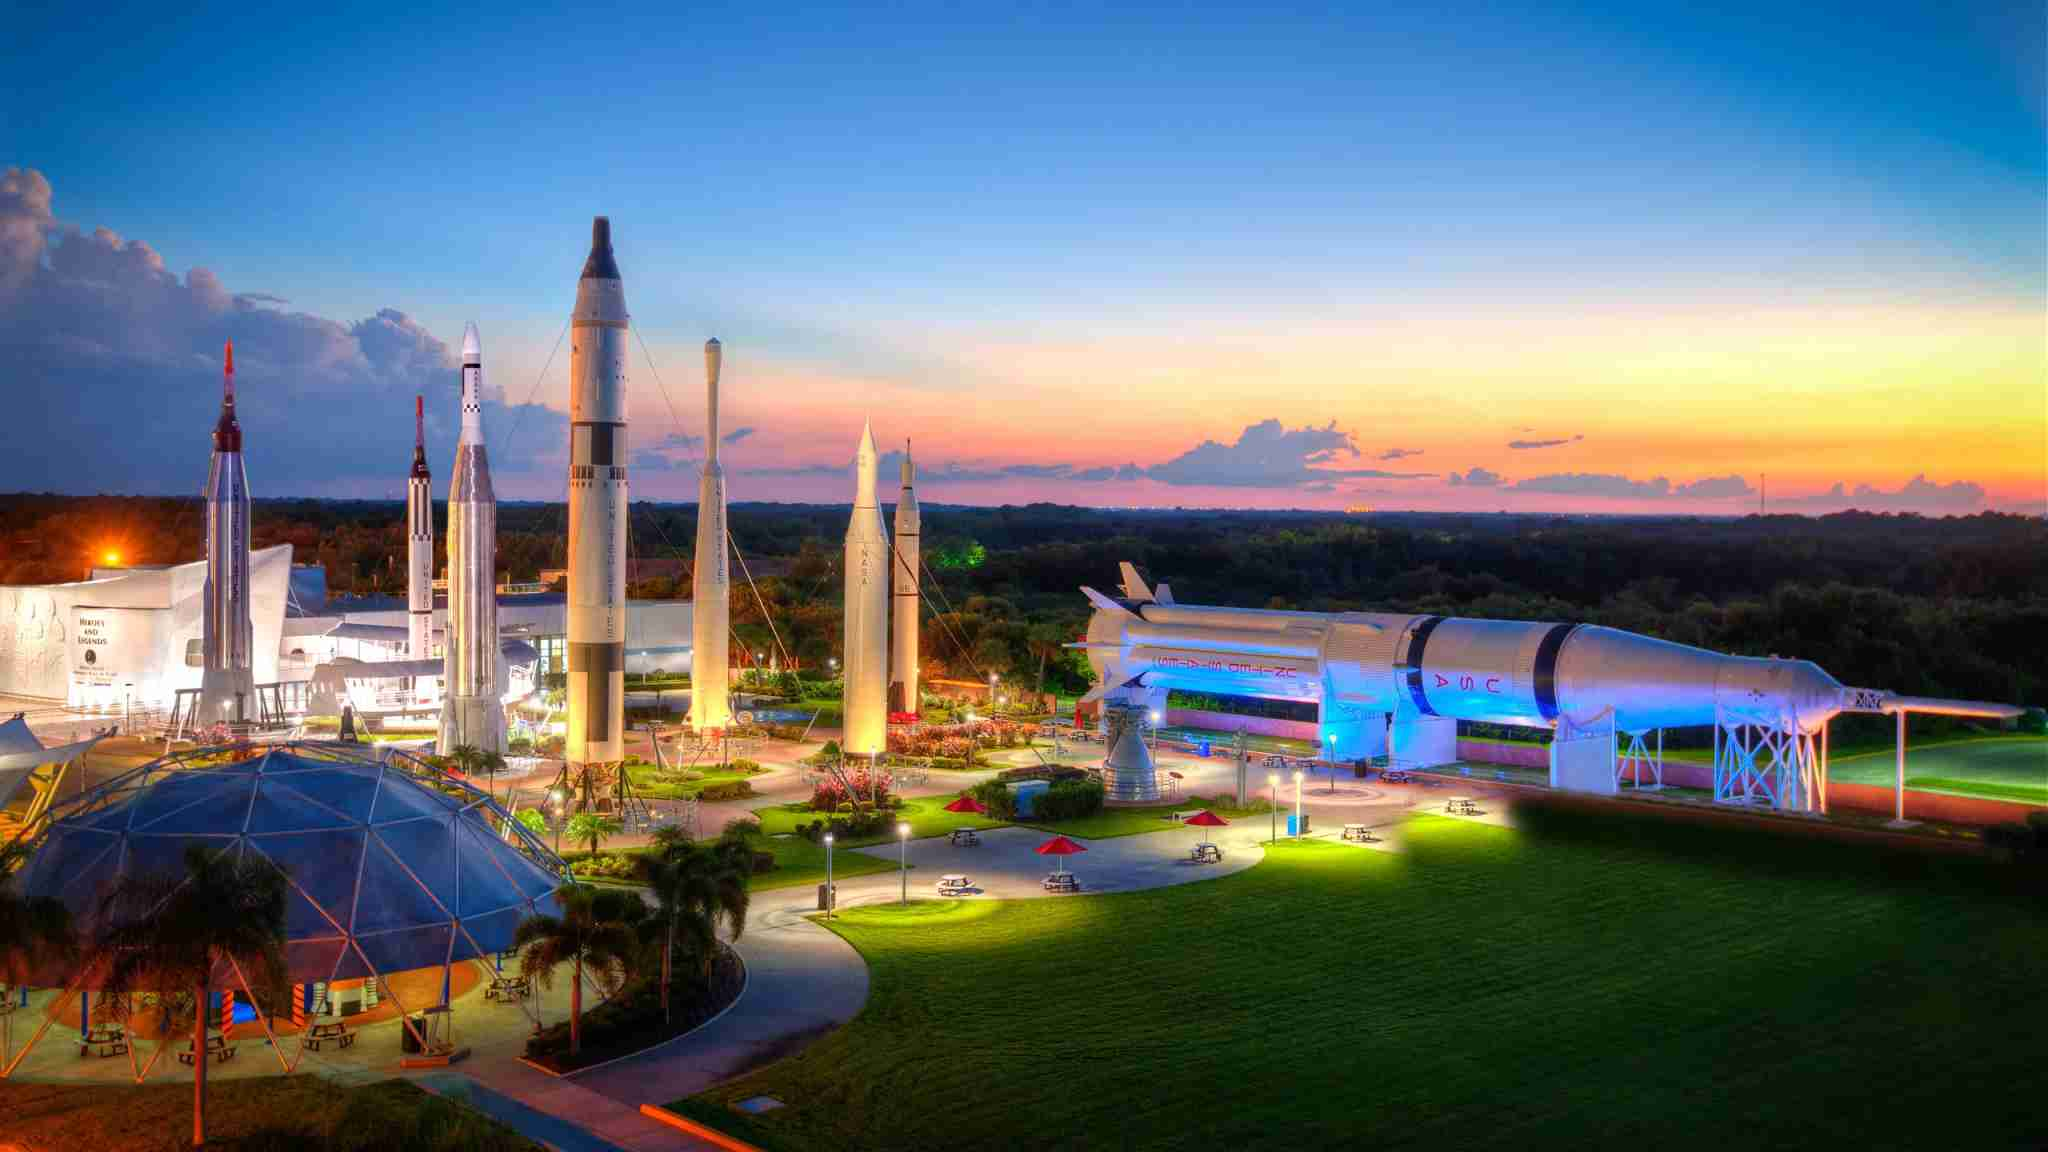 Rocket Garden (Photo courtesy of Kennedy Space Center)